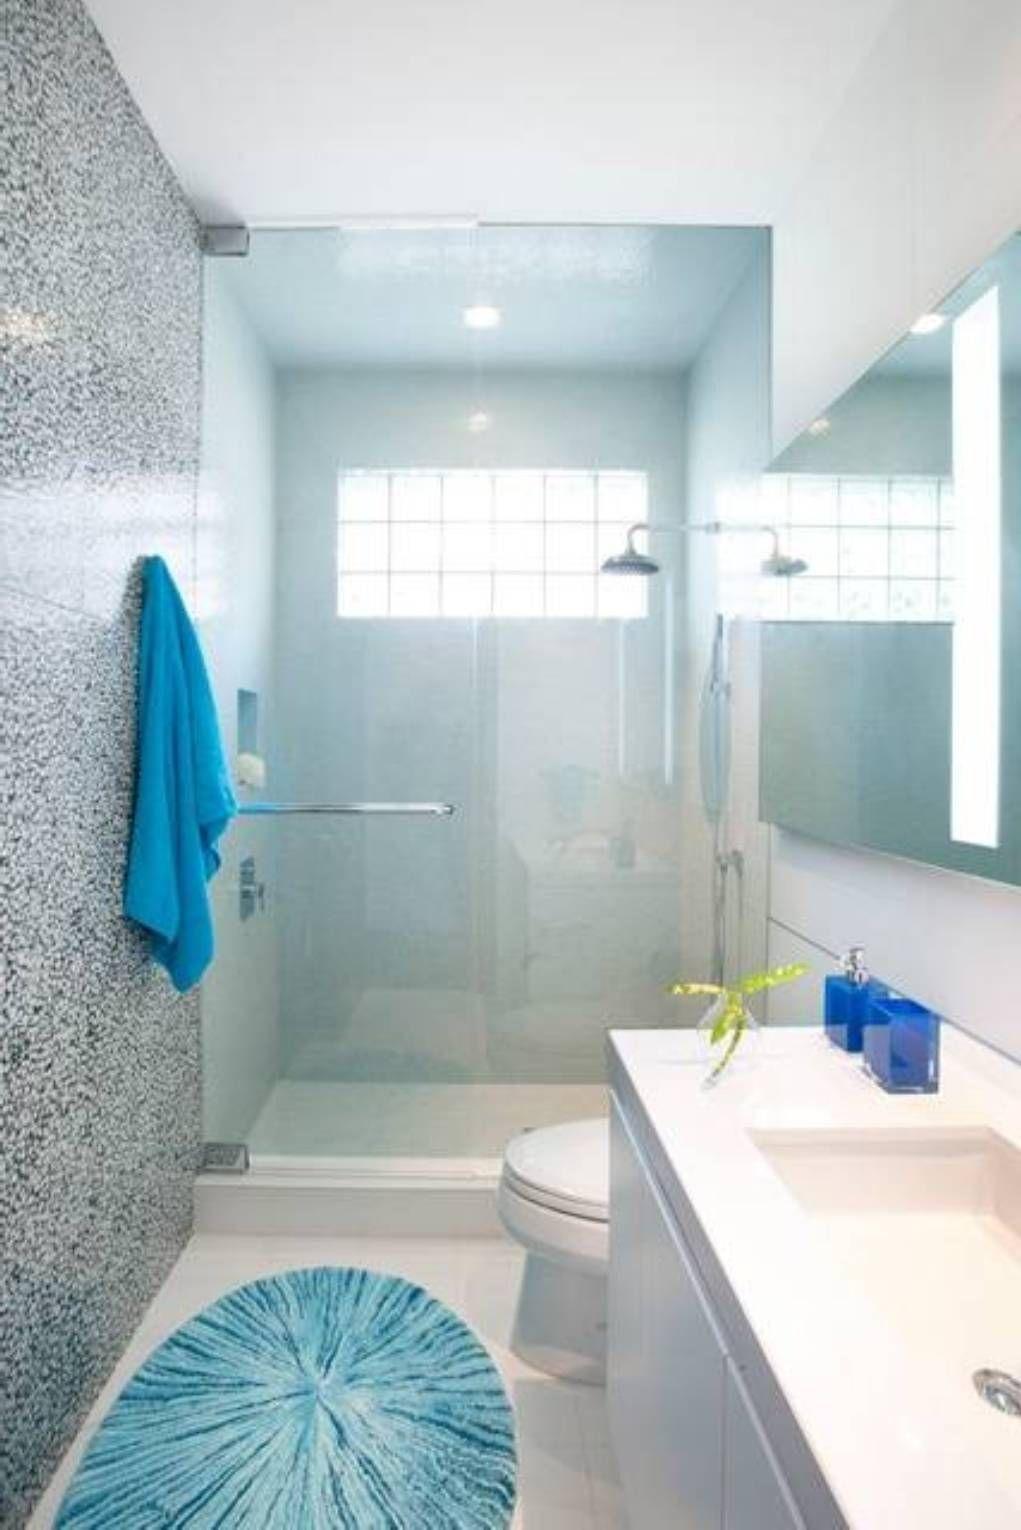 Simple bathrooms with shower - 25 Small Bathroom Ideas Photo Gallerytrough Sink Bathroom